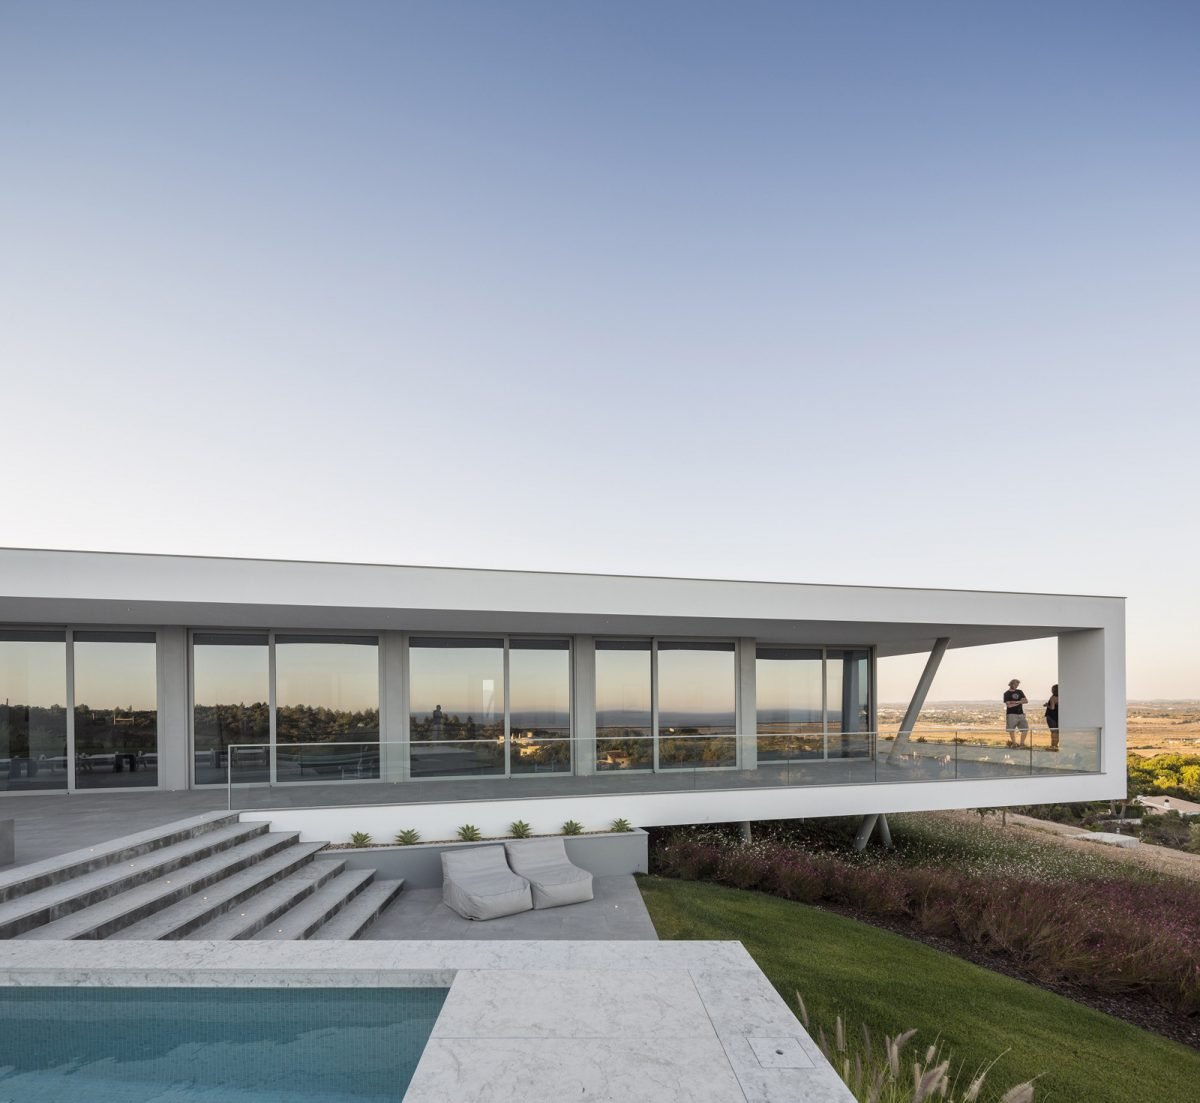 Best Architecture Projects: All About Zauia House by Mário Martins Atelier architecture Best Architecture Projects: All About Zauia House by Mário Martins Atelier 1782 147 e1567171209496